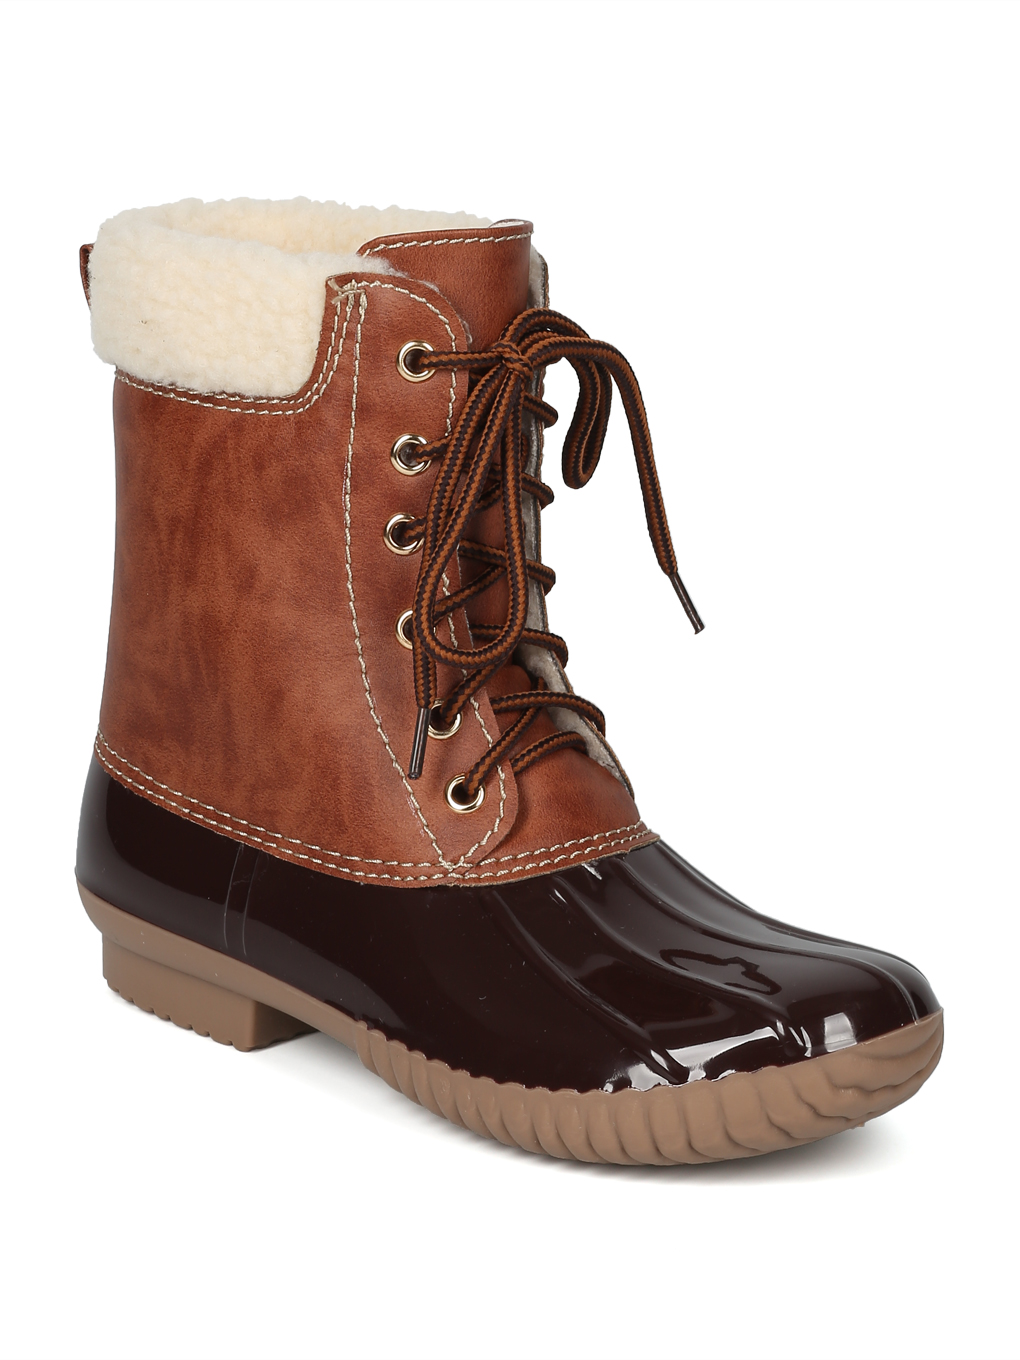 New Women Two Tone Faux Shearling Lined Lace Up Duck Boot - 17990 By Yoki